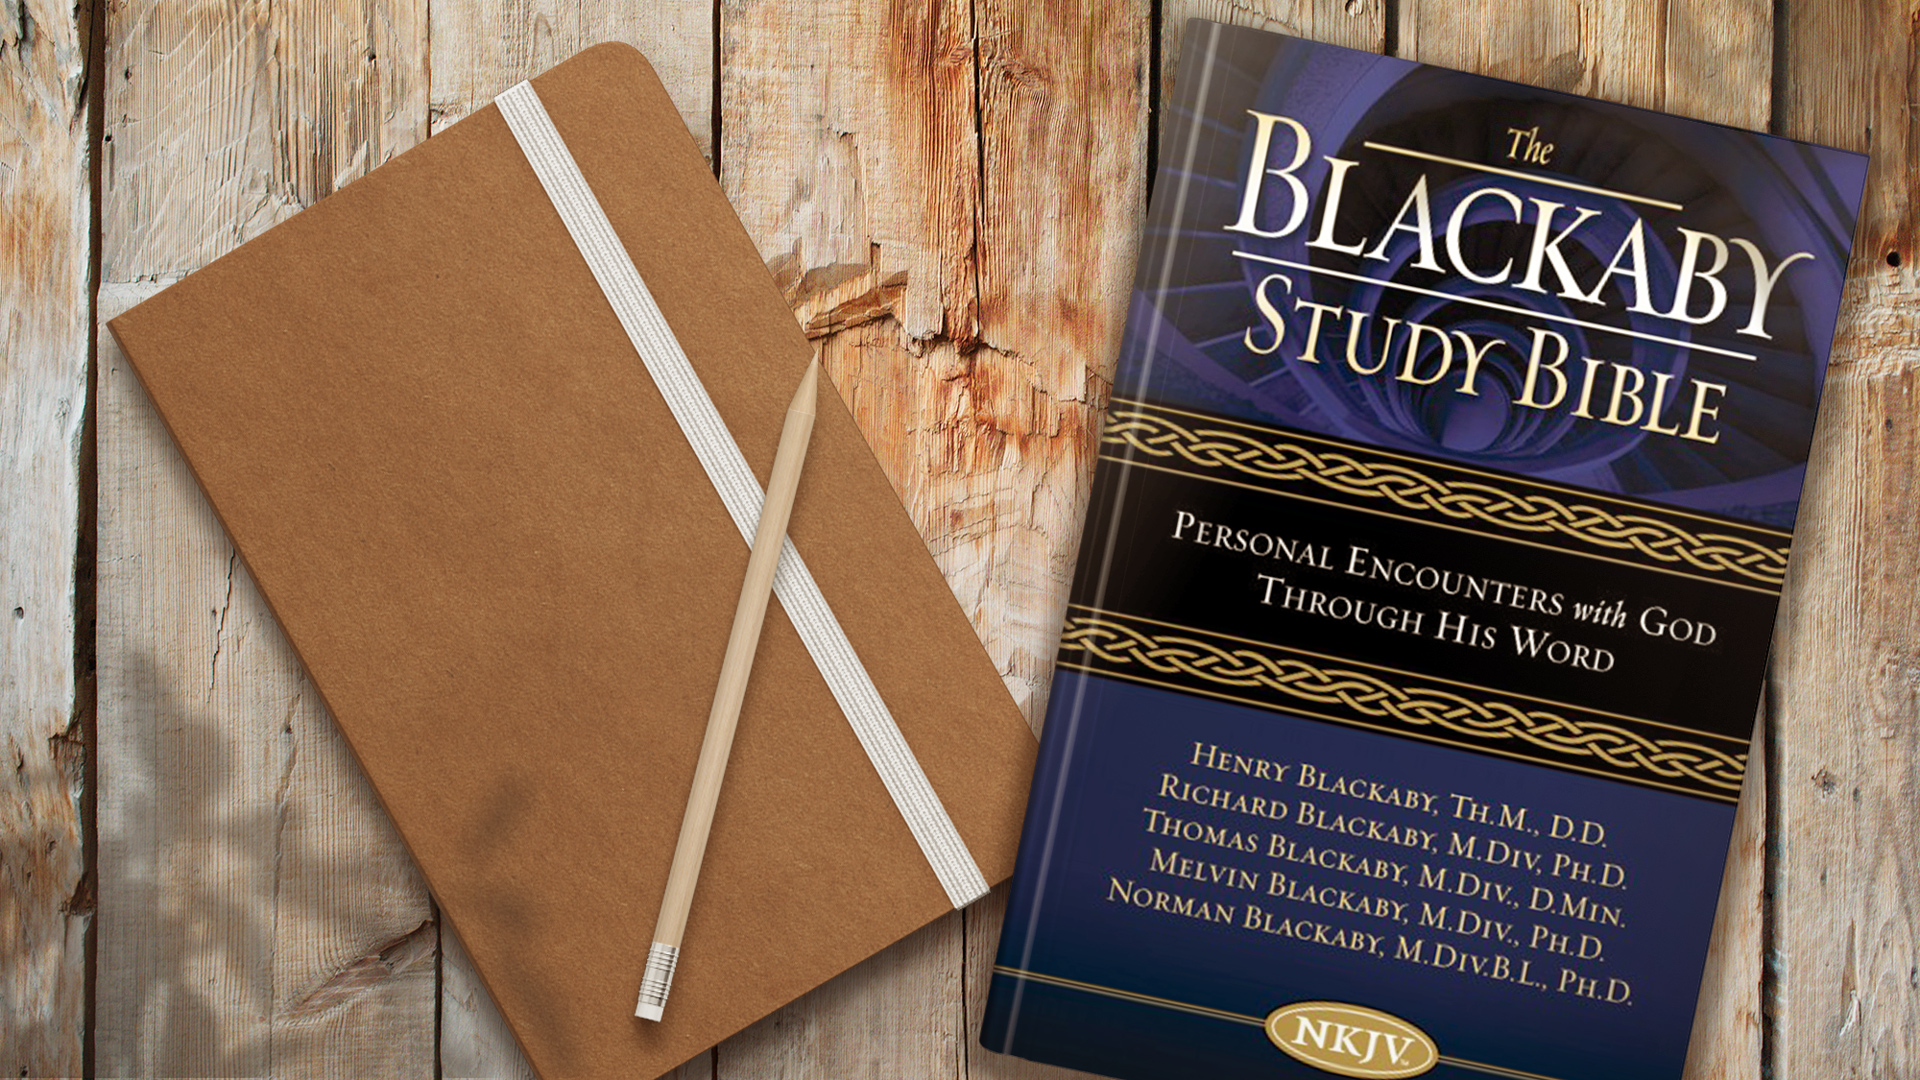 Blackaby Study Bible Olive Tree Bible App